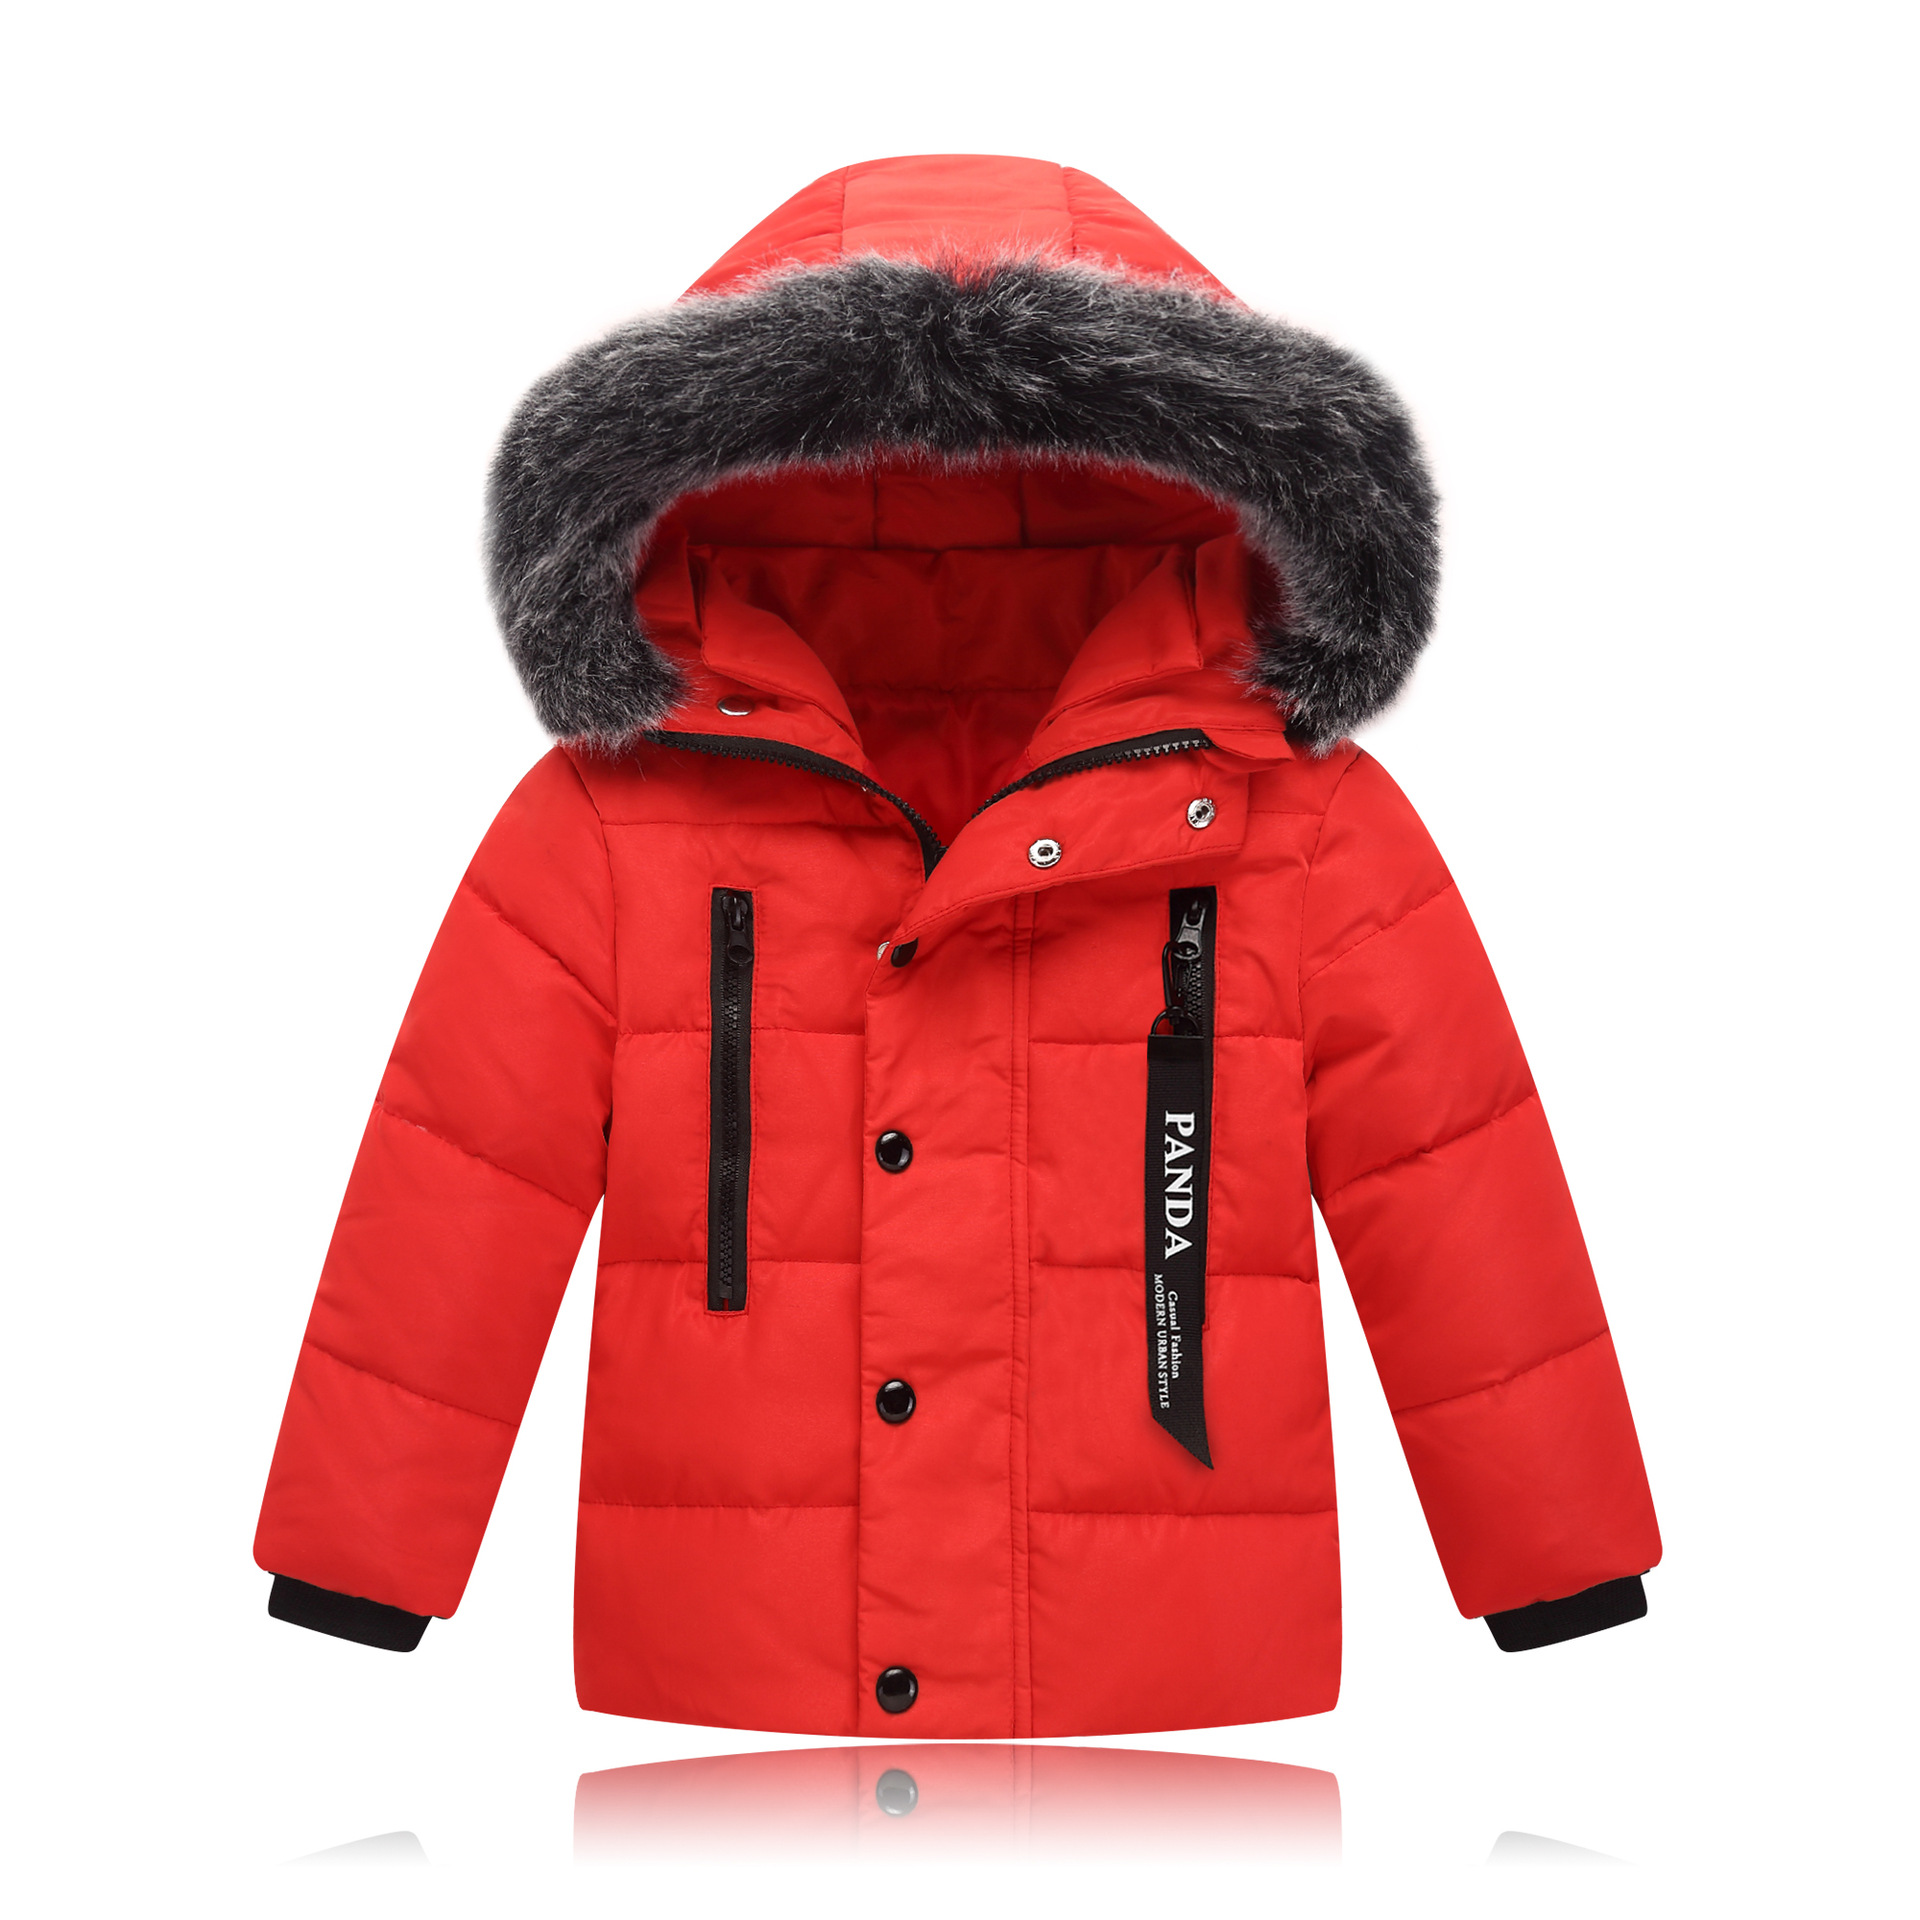 White Jacket Boys Duck Down Teenagers Winter Down Jacket Girls Thick Fur Collar Warm Korean Tide new 2017 winter baby thickening collar warm jacket children s down jacket boys and girls short thick jacket for cold 30 degree